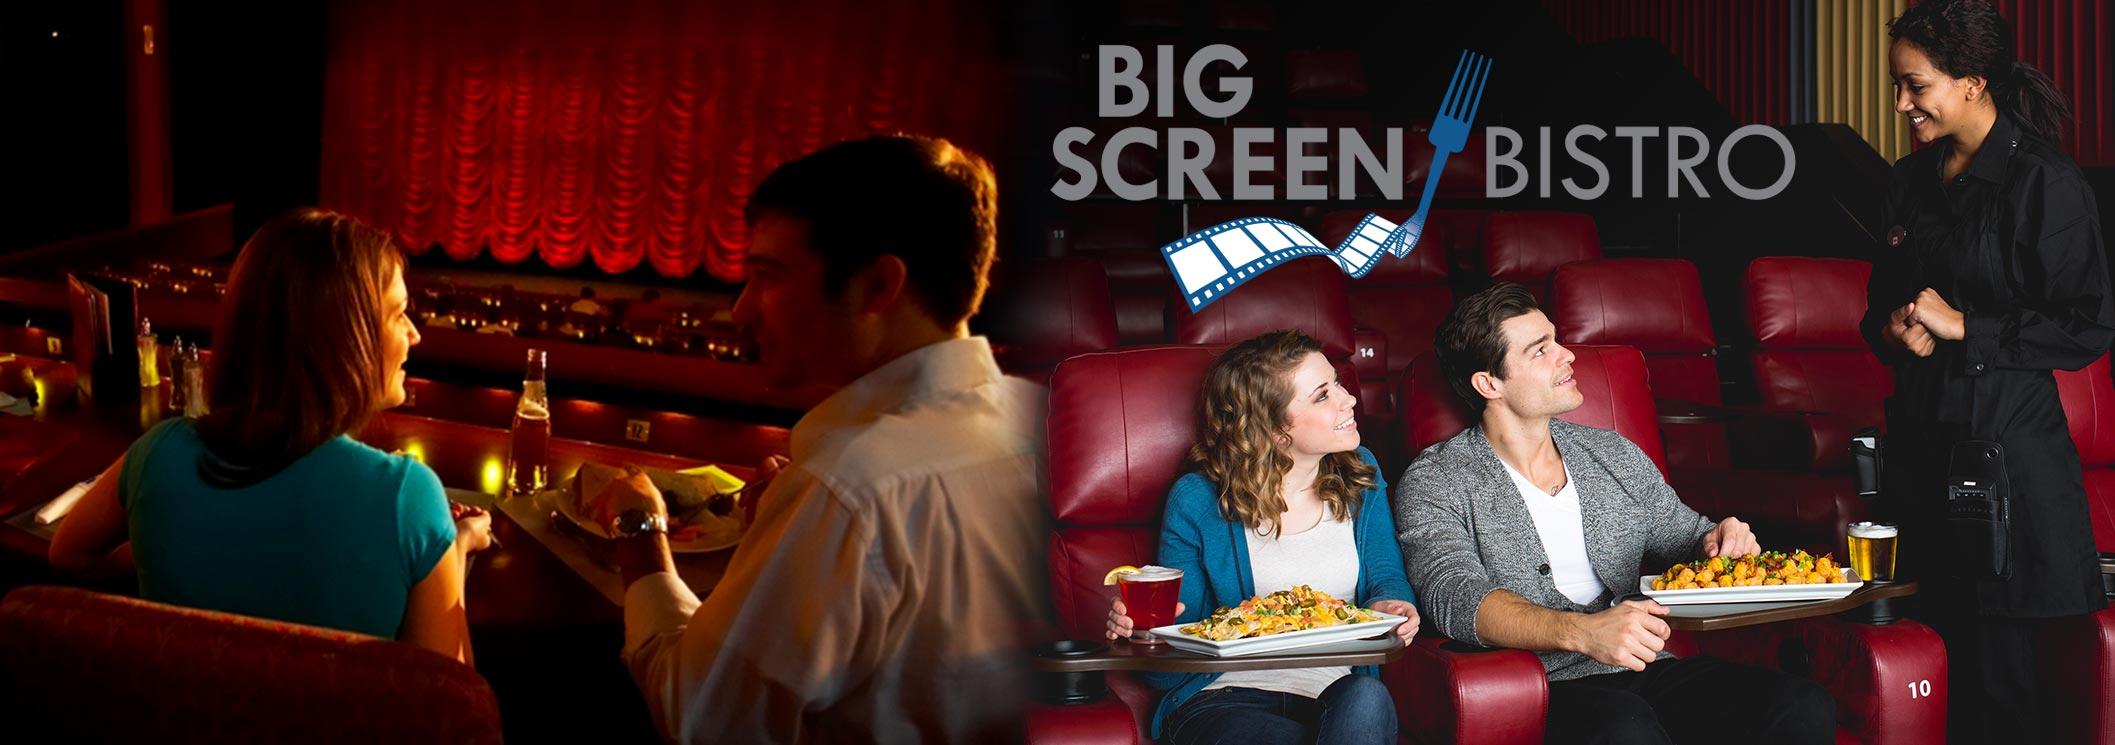 Big Screen Bistro